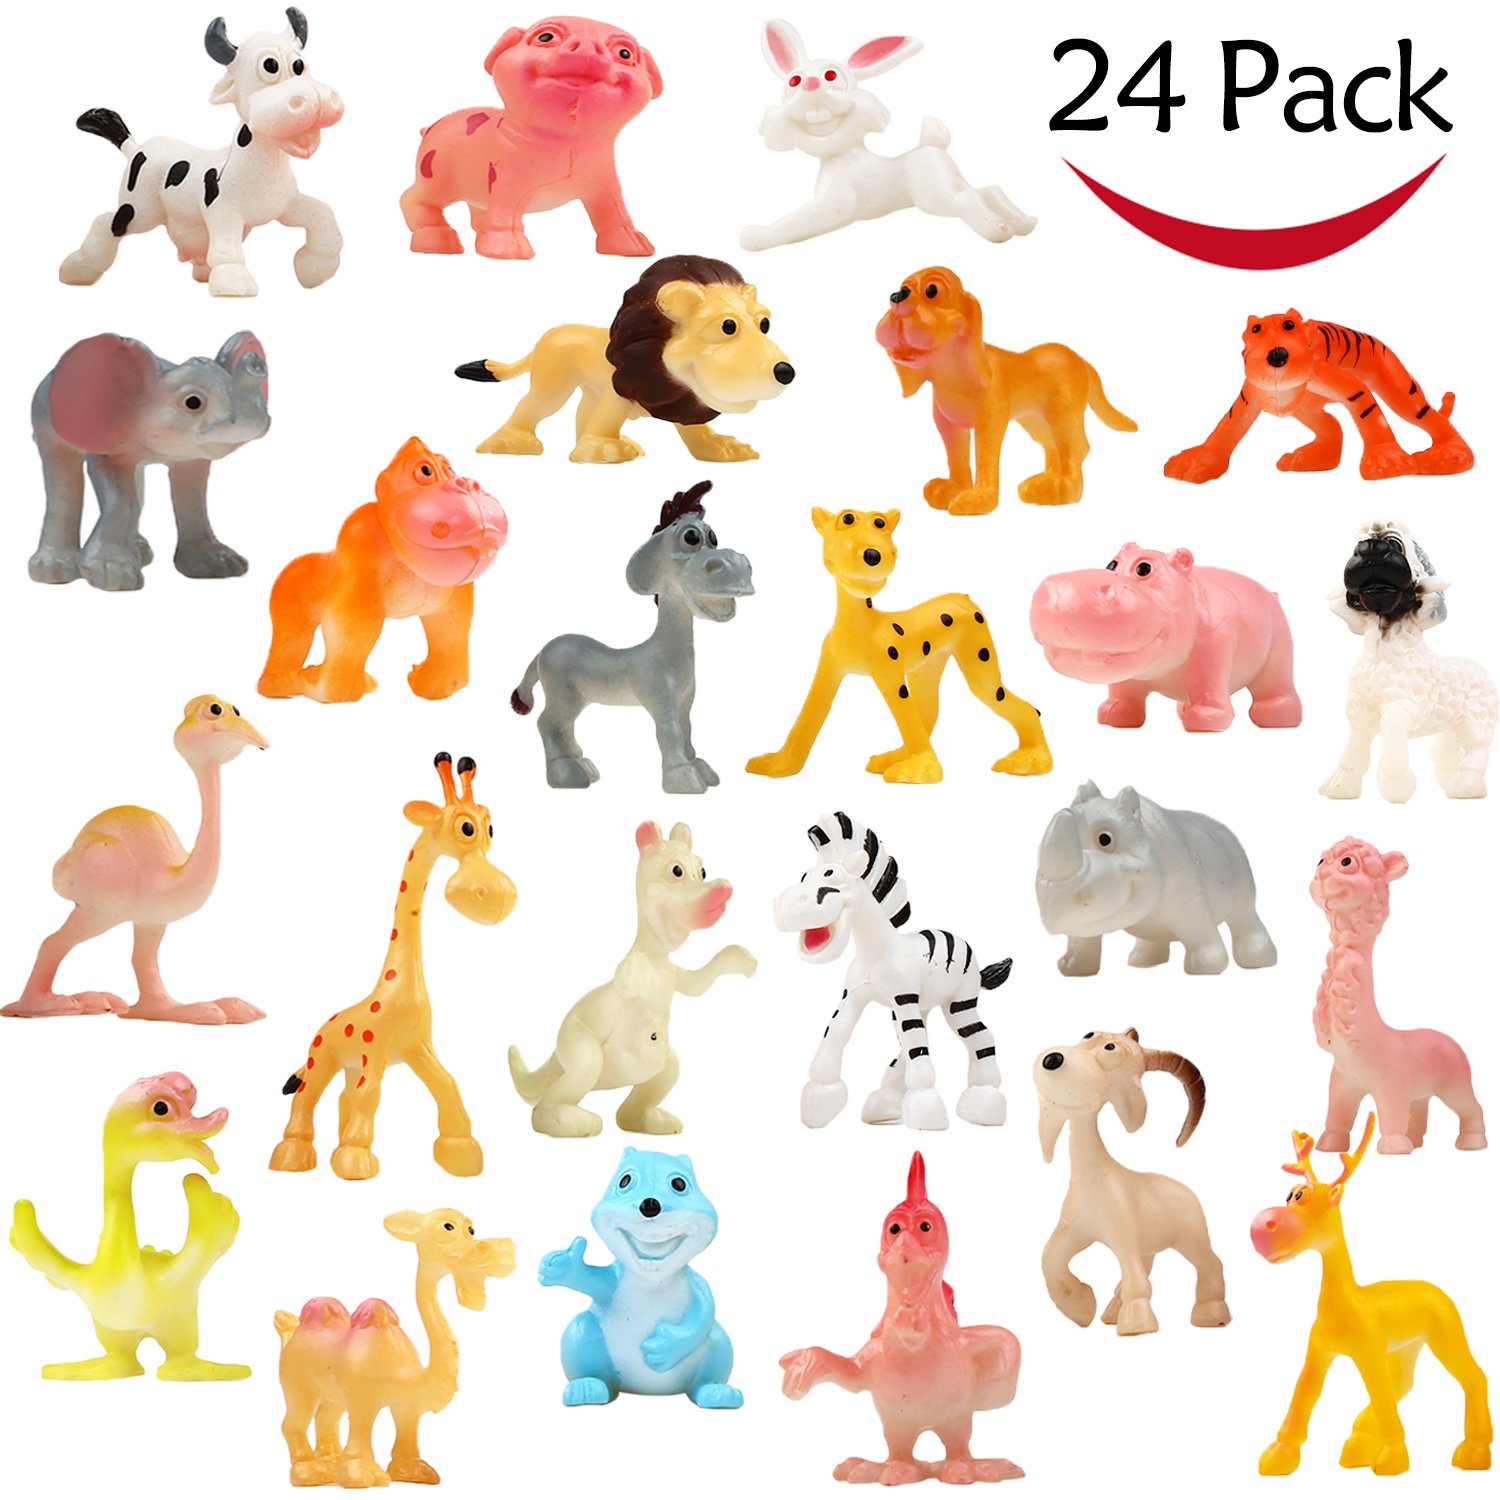 Cartoon Animal, 24 Pack Mini Plastic Wild Animals Models Toys Kit, Funcorn Toys Jungle Animal Figures Set for Children Boys and Girls Kids Party Favors Classrooms Rewards Birthday Gift Educational Toy